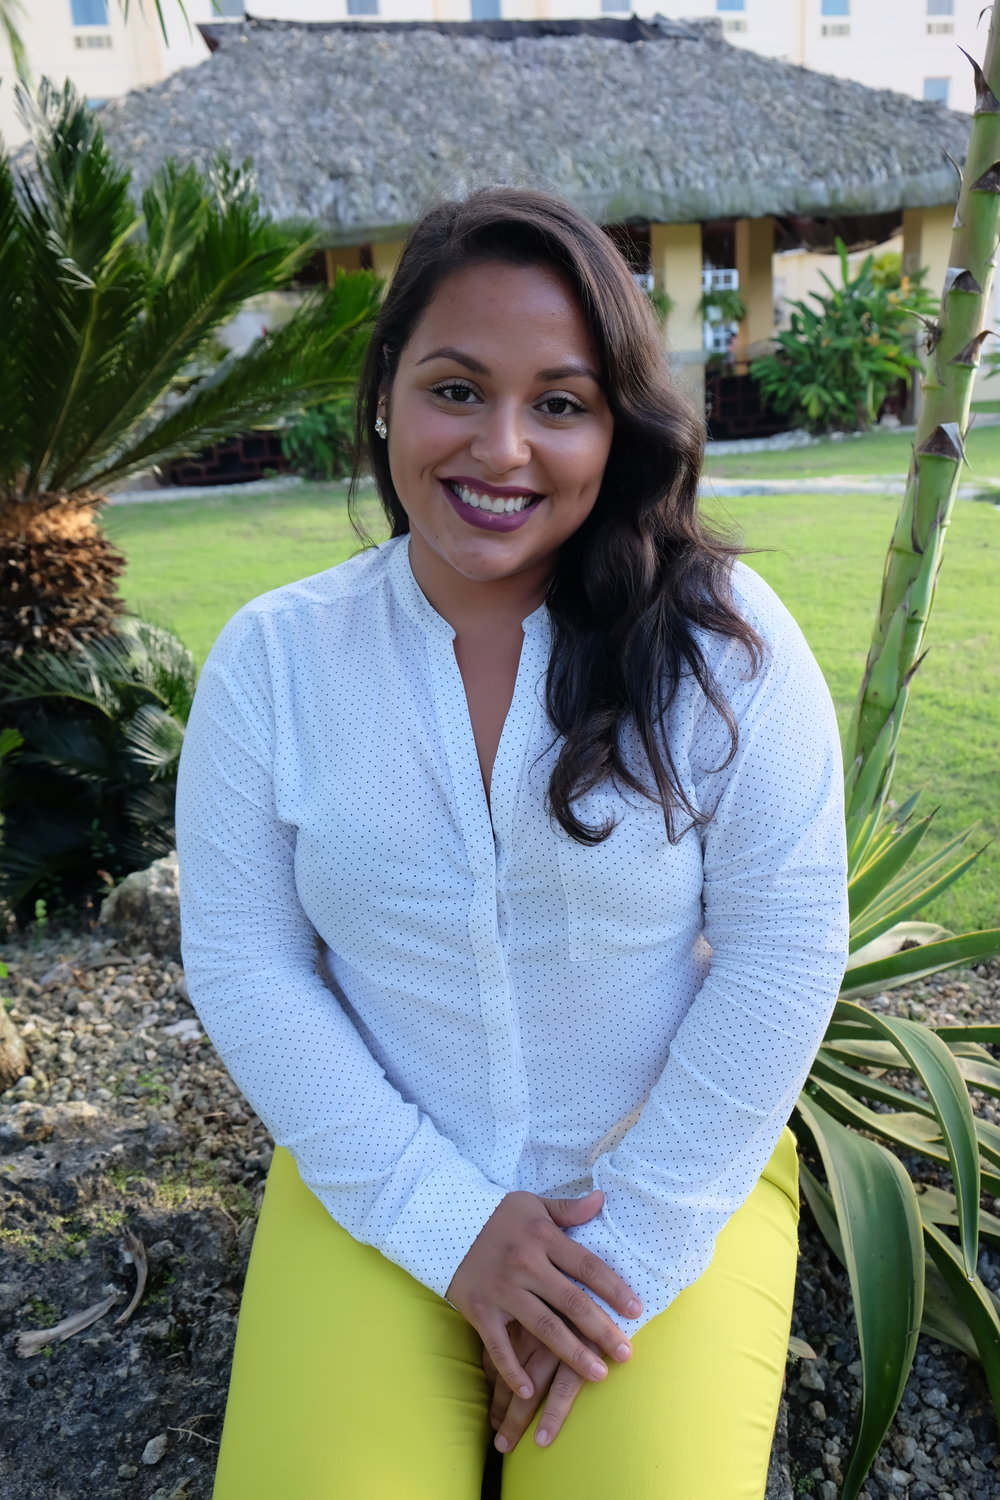 Meet Zaira - Zaira Vicario is a Returned Peace Corps Volunteer who served as a Primary Literacy Promoter in the Dominican Republic from March 2016 through May 2018. She graduated from the University of Michigan with a degree in Women's Studies.Driven by education, wellness, and beauty, she takes pride in giving back to her community and making memorable moments with her family and friends. You can find her on LinkedIn and Instagram.